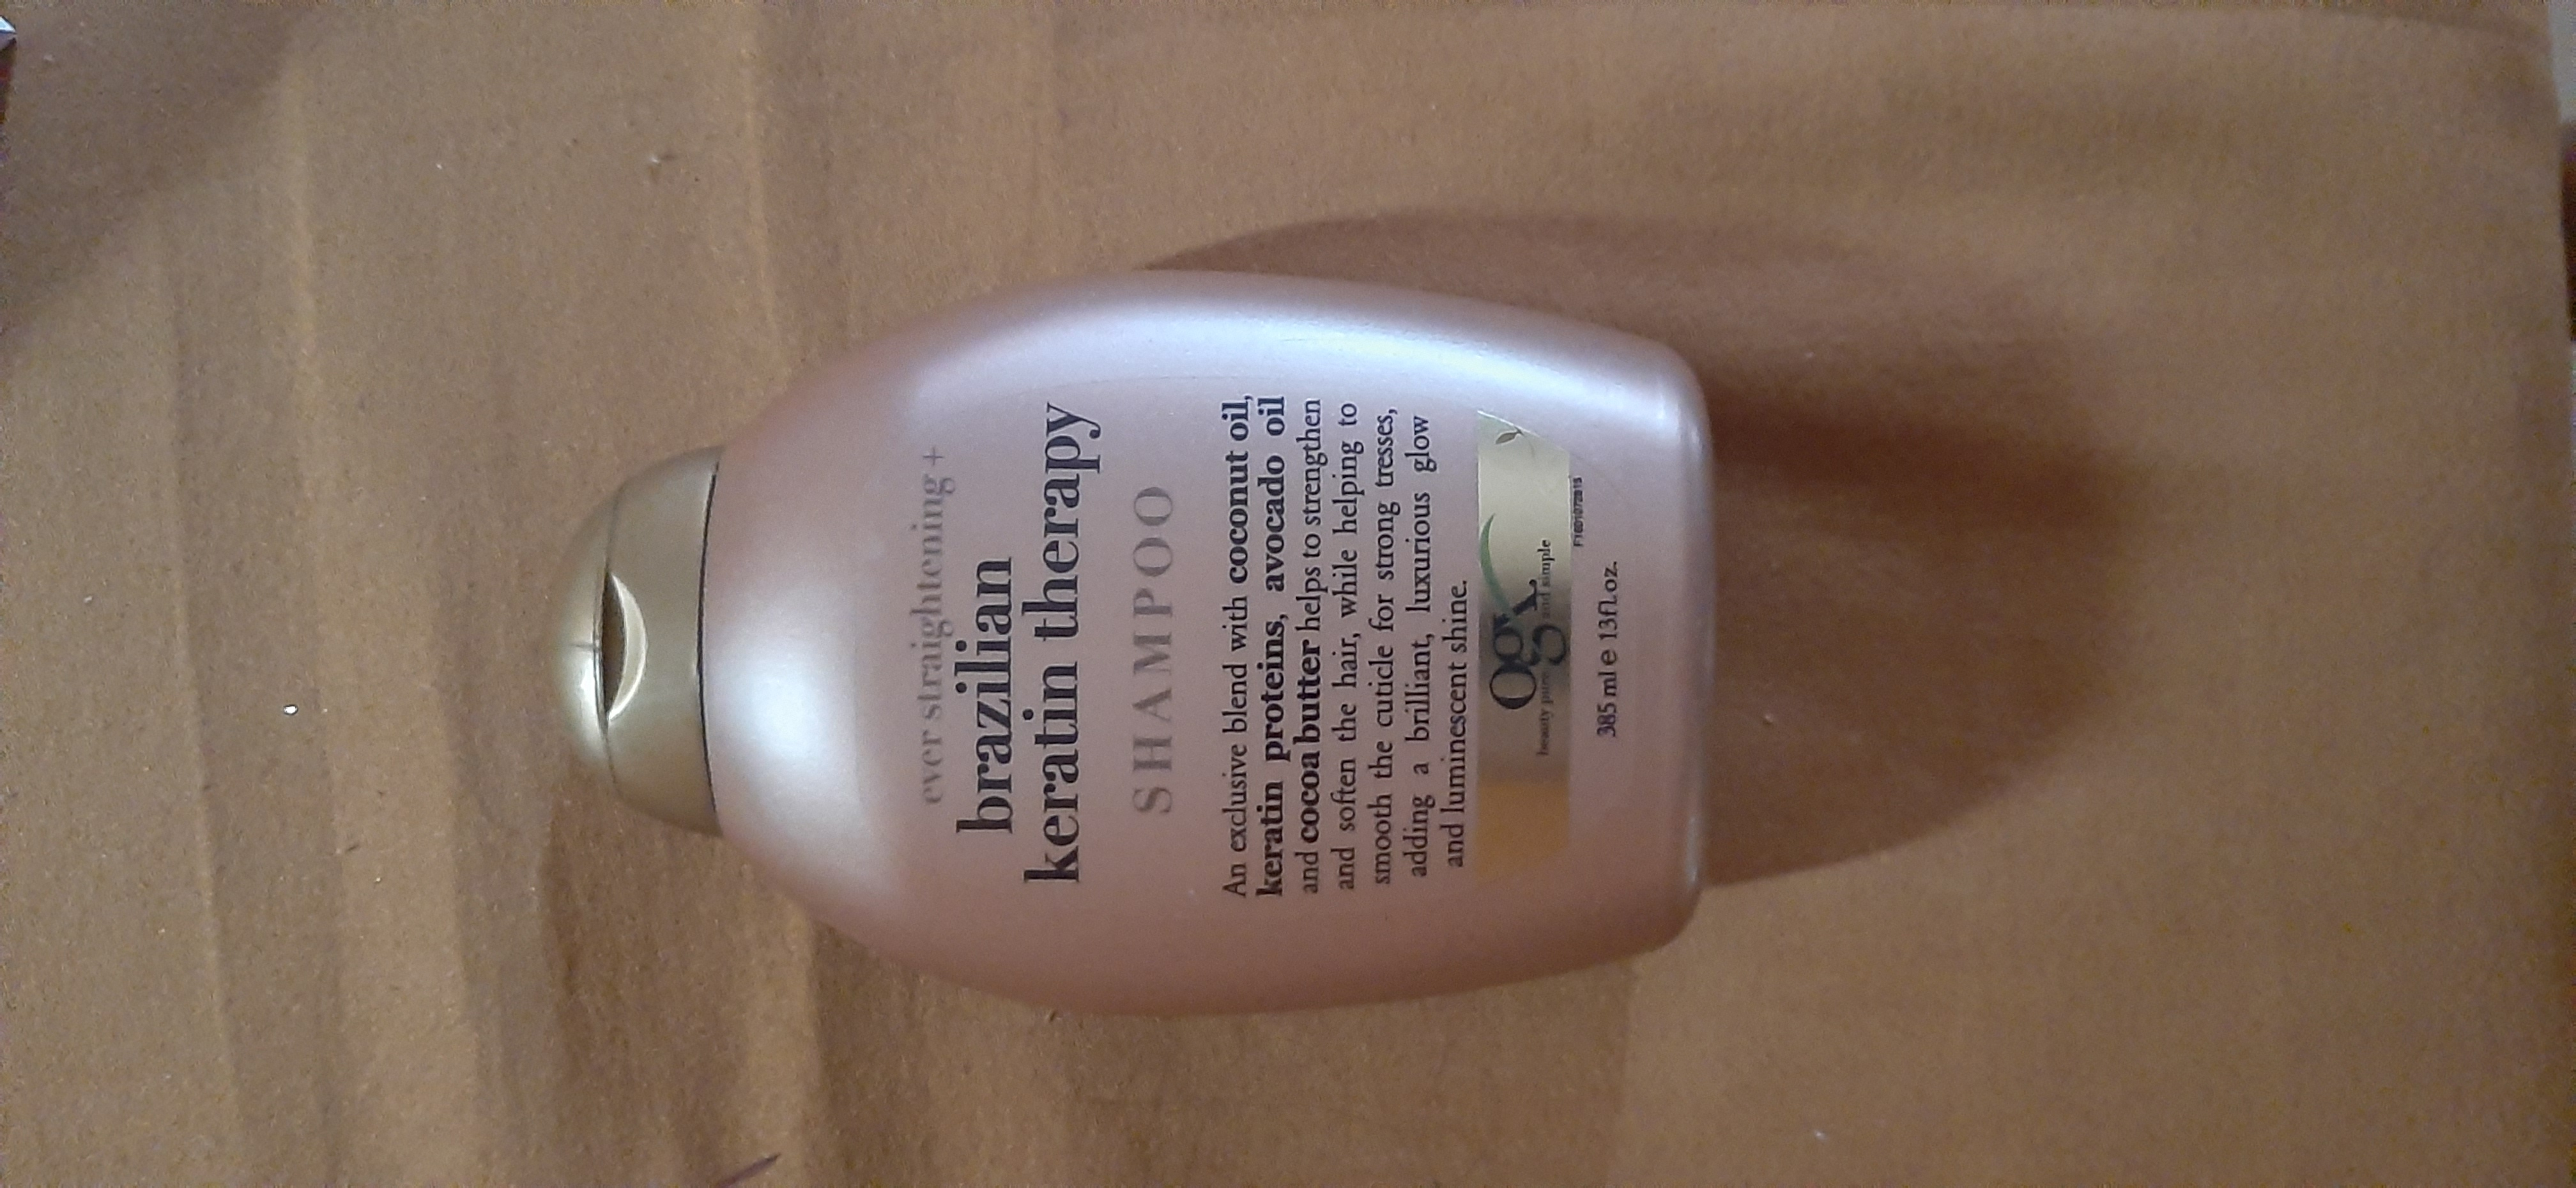 OGX Brazilian Keratin Therapy Shampoo -Defintely worth a try-By hinap